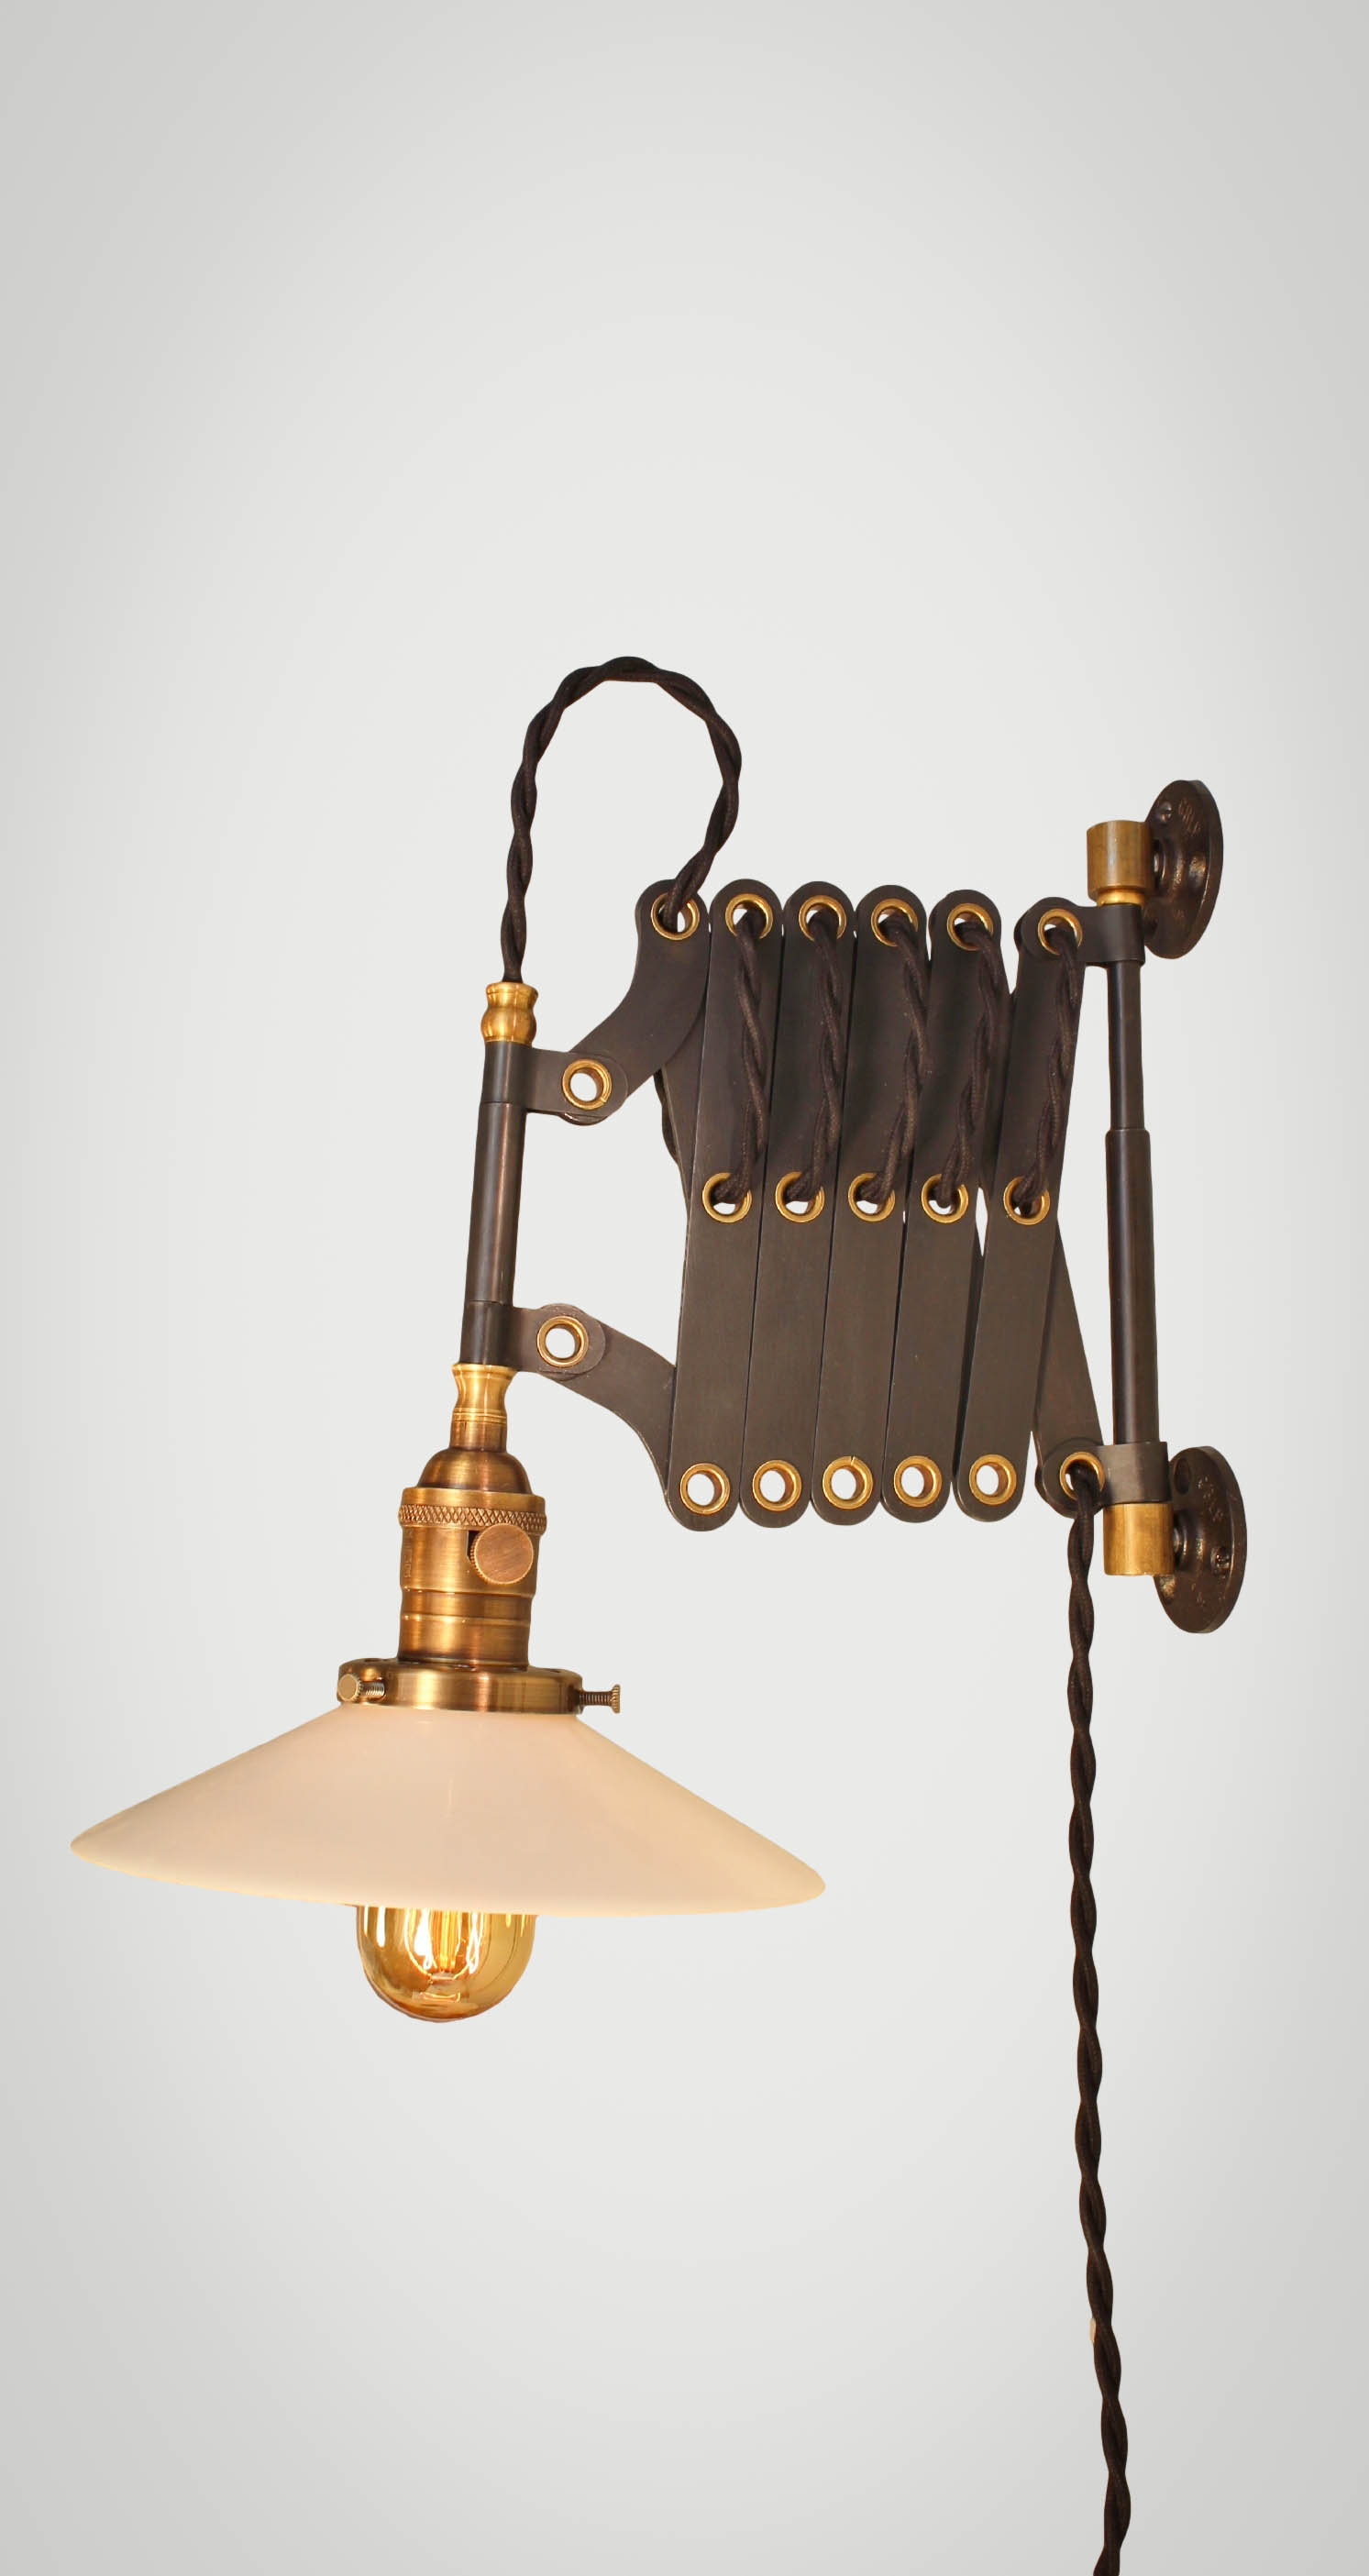 lamp of bronze products light arm superior oil shades rubbed swing wall